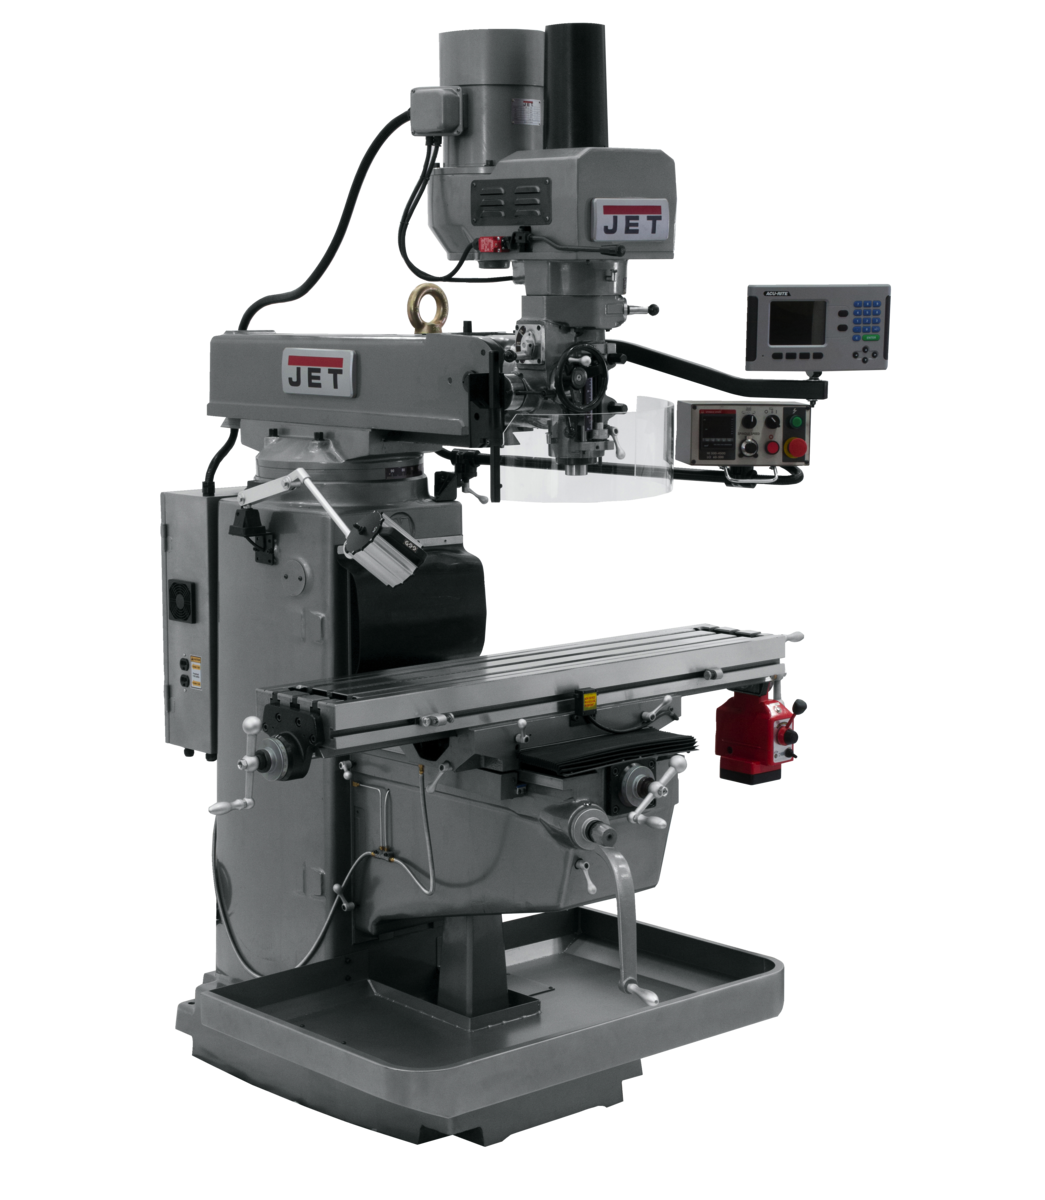 JTM-1050EVS2/230 Mill With 3-Axis Acu-Rite 203 DRO (Knee) With X-Axis Powerfeed and Air Powered Draw Bar